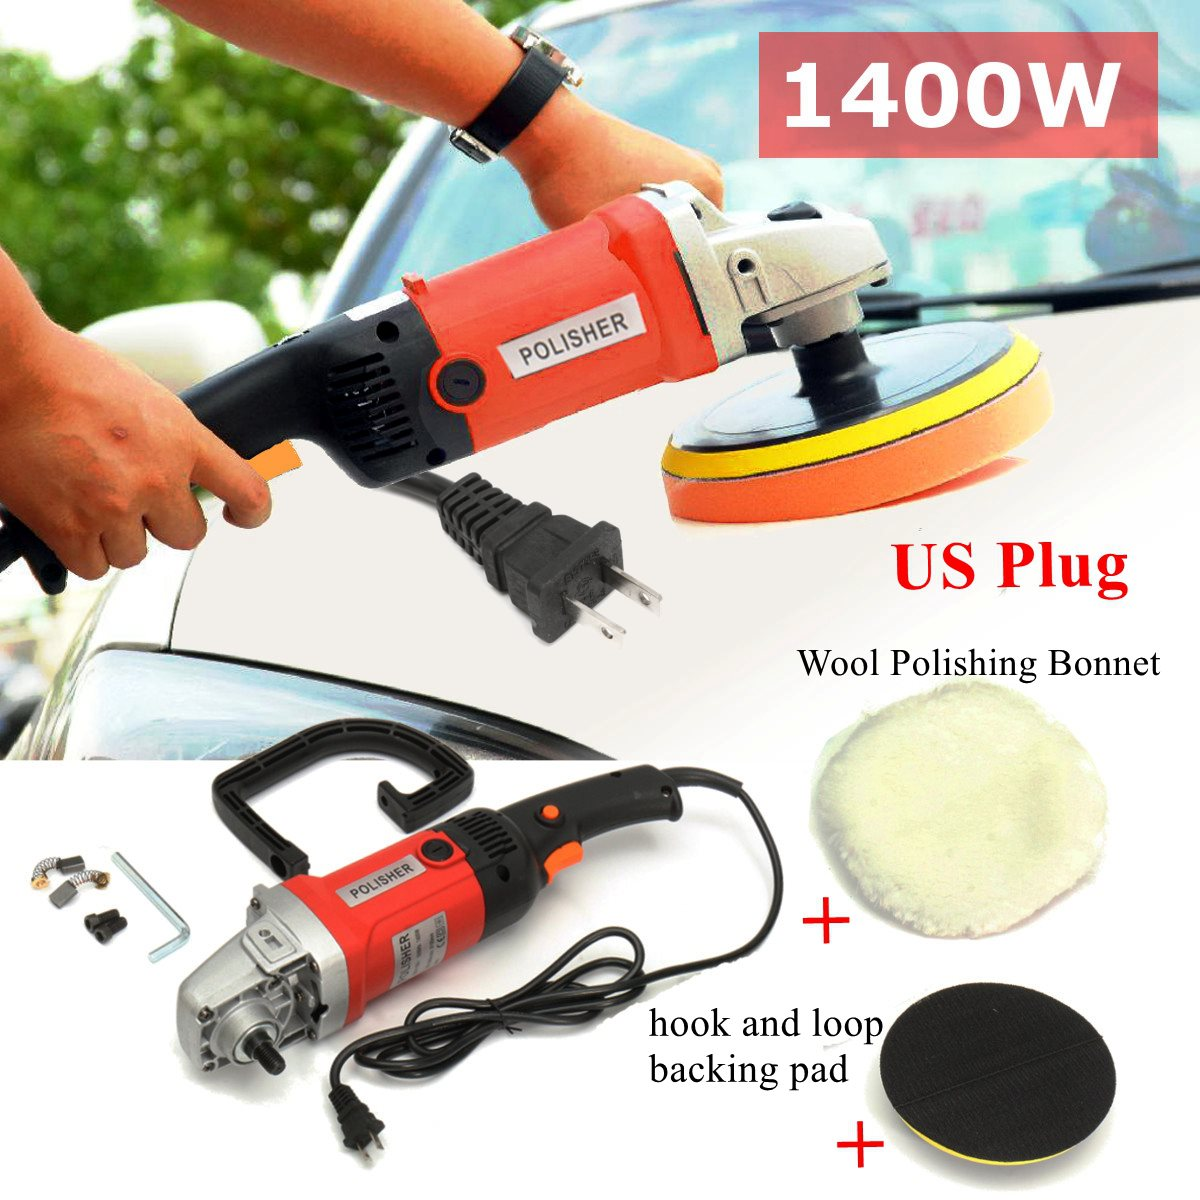 Heavy Duty 110V 1400W Polishing Waxing Machine Electric Polisher Power Sander Kit 180mm Hook Waxer for Car Boat